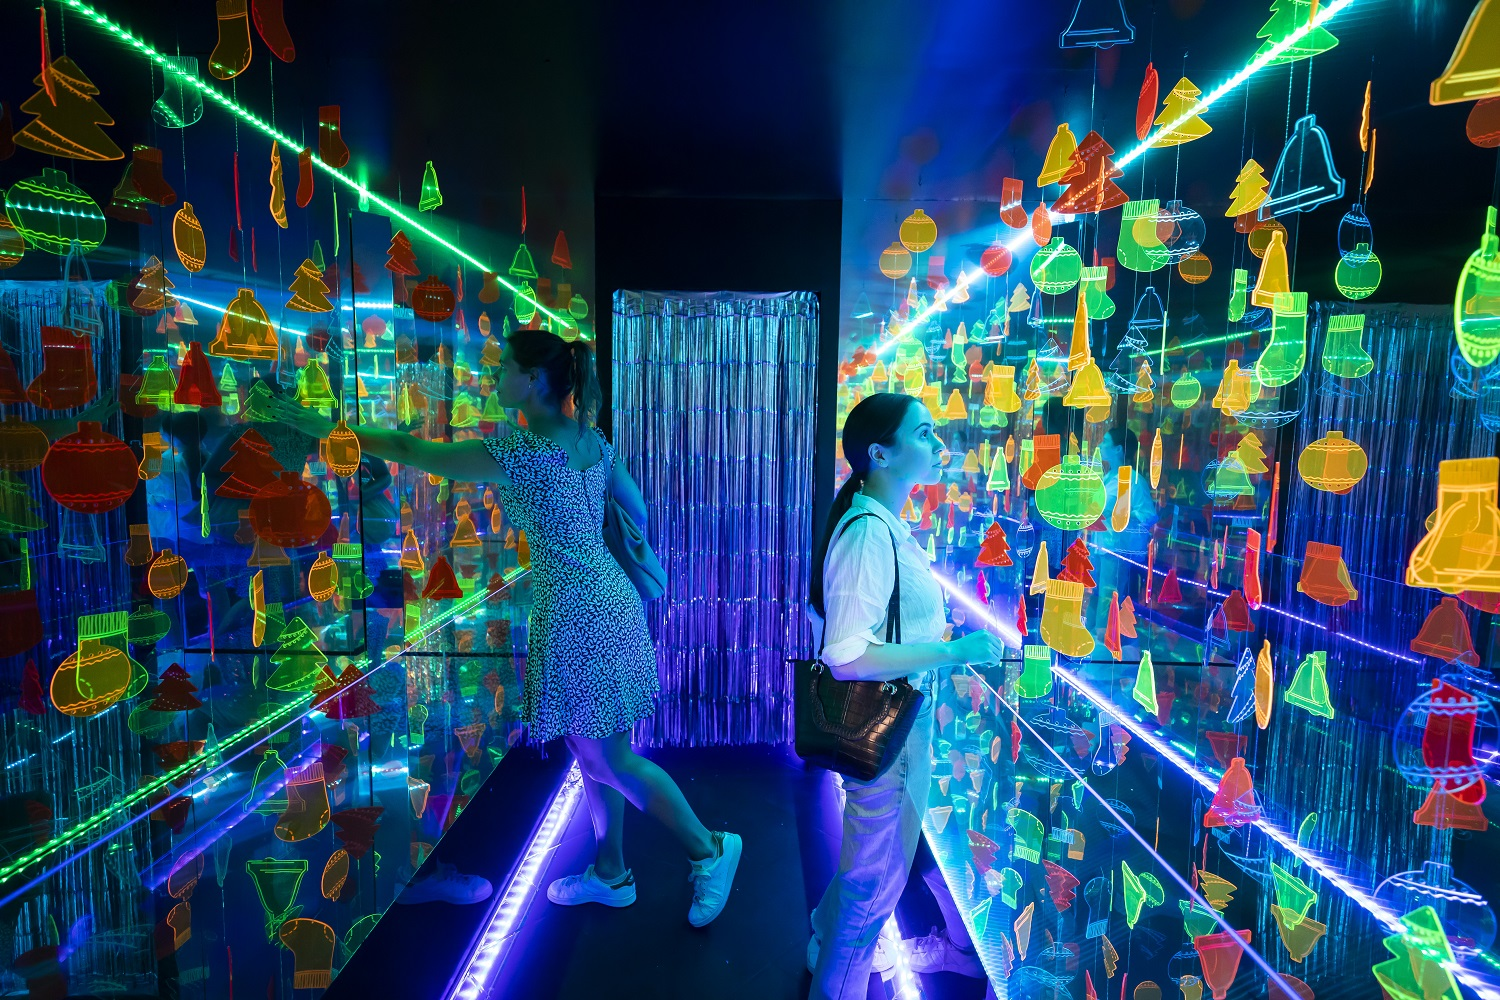 Experience the Christmas Infinity Rooms at Market City